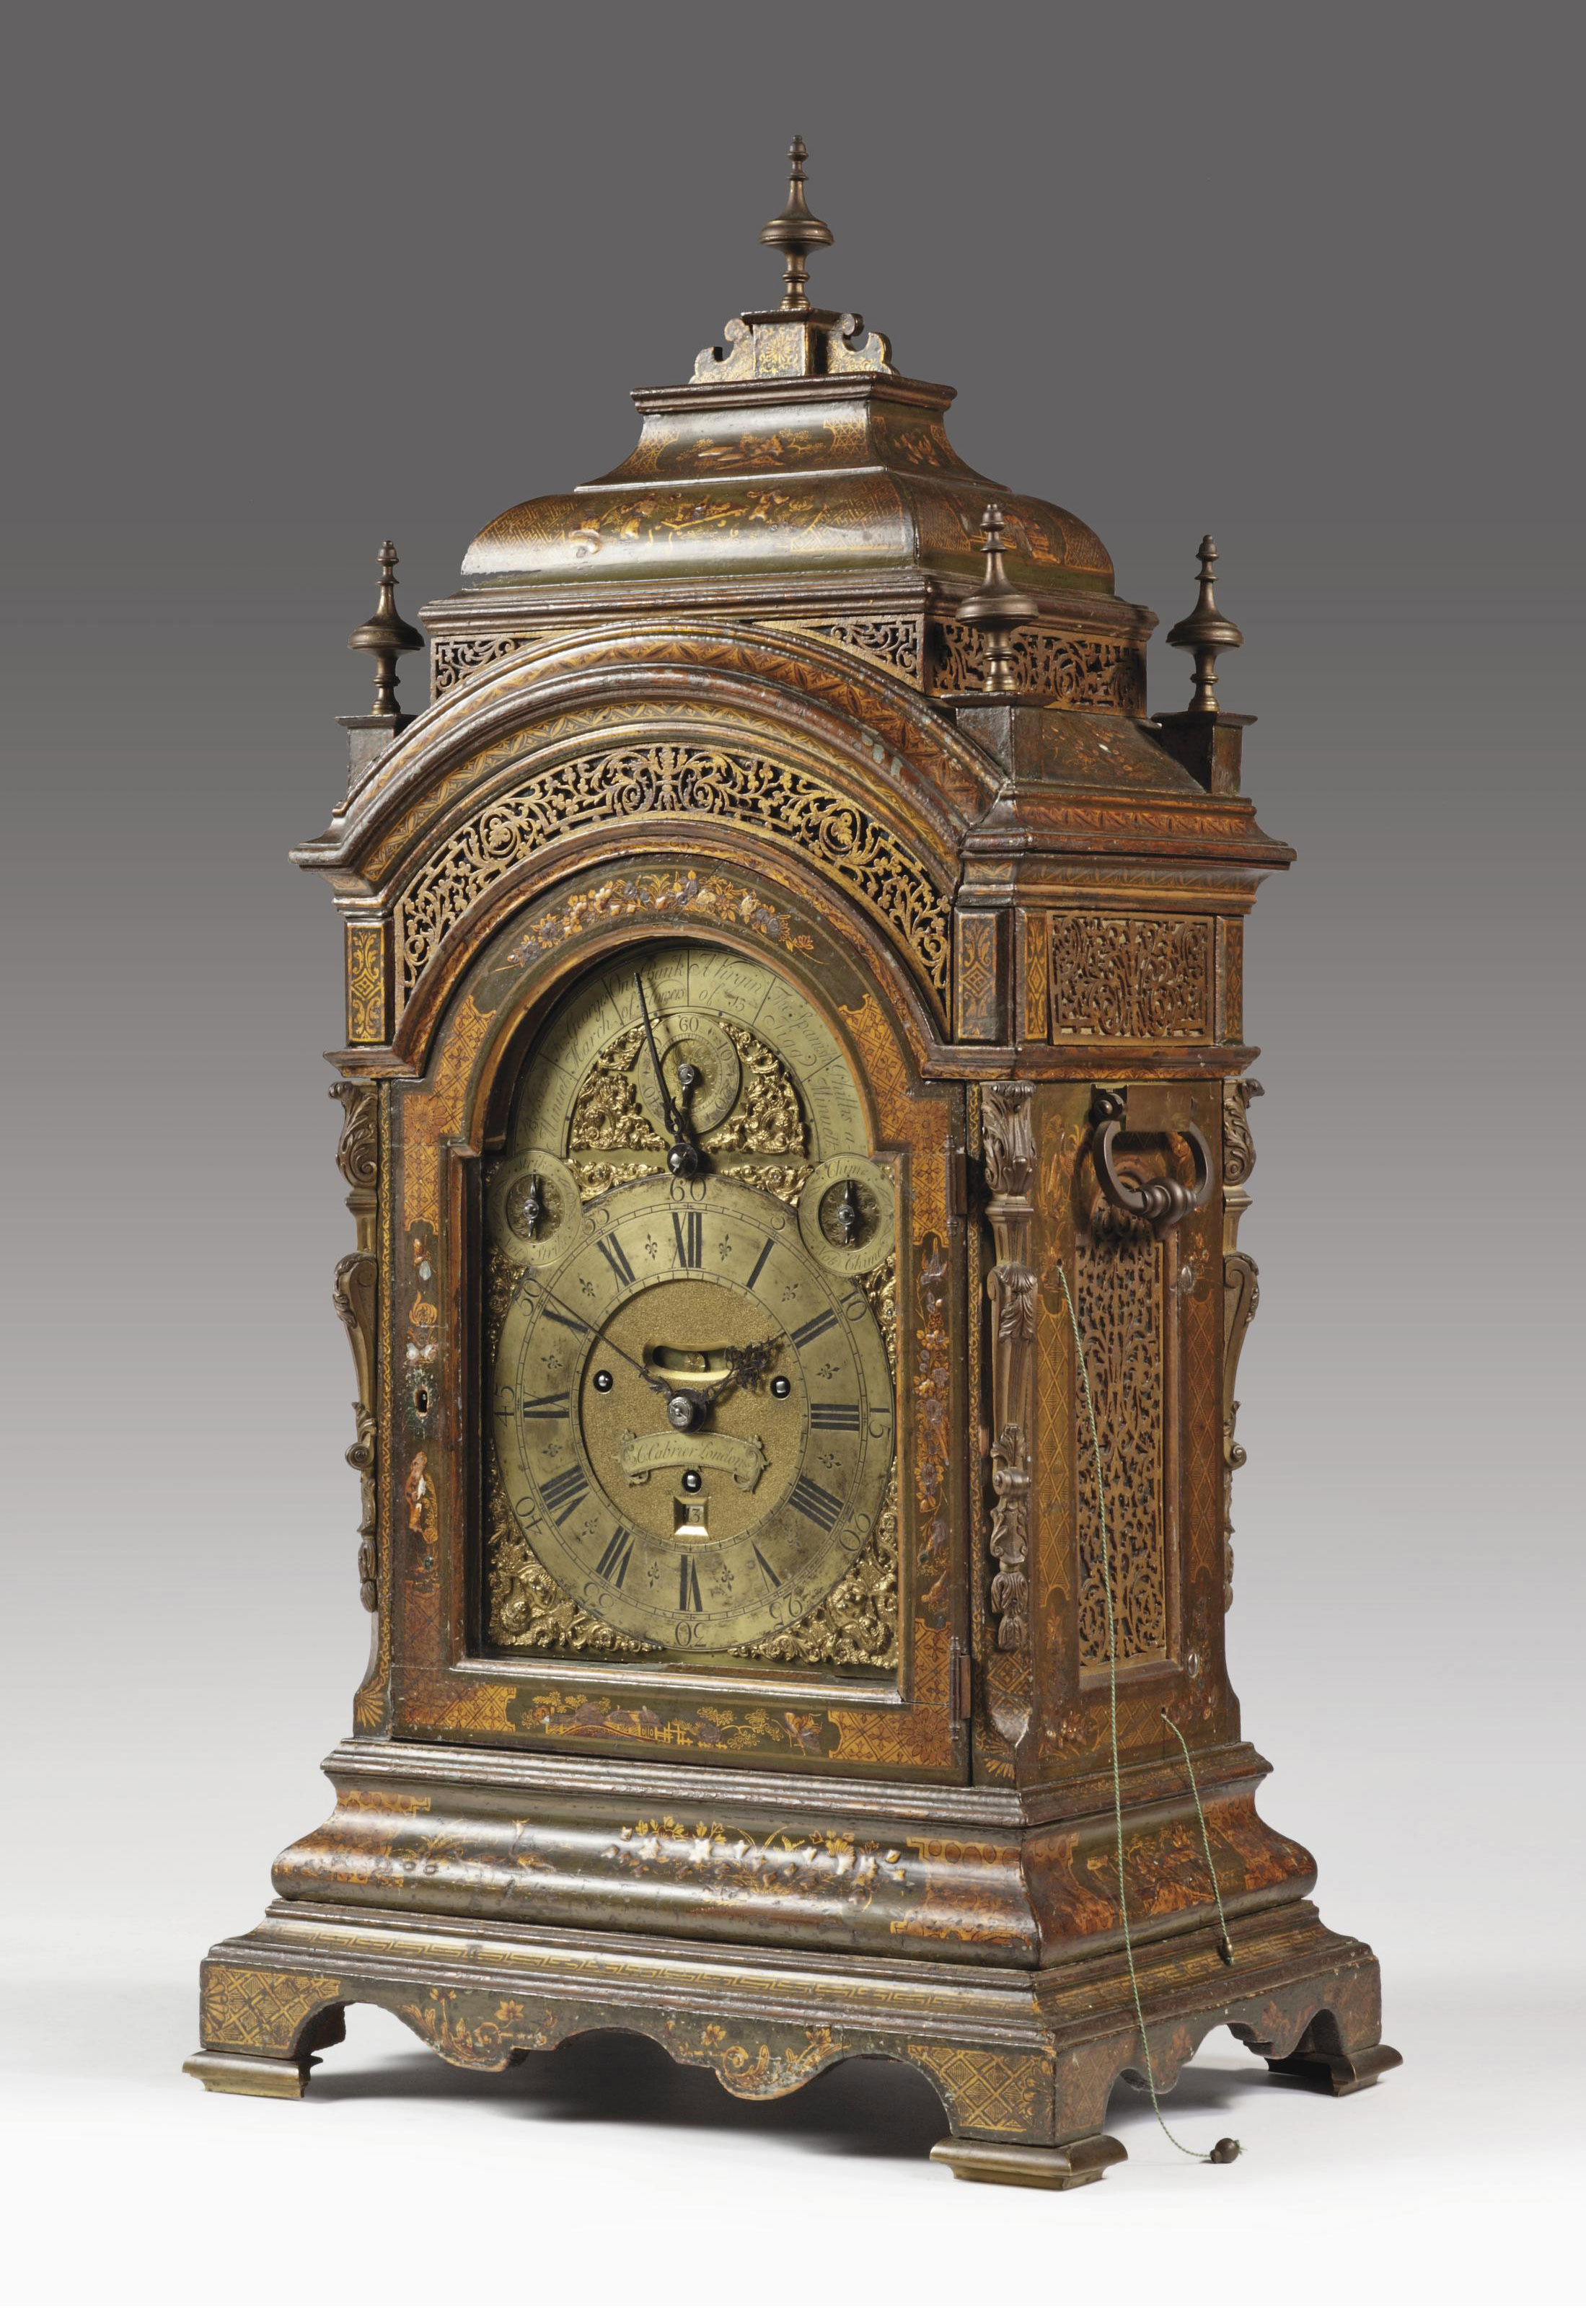 A GEORGE II BRASS-MOUNTED GREEN JAPANNED MUSICAL EIGHT DAY TABLE CLOCK WITH QUARTER PULL REPEAT AND ON TURNTABLE PLINTH